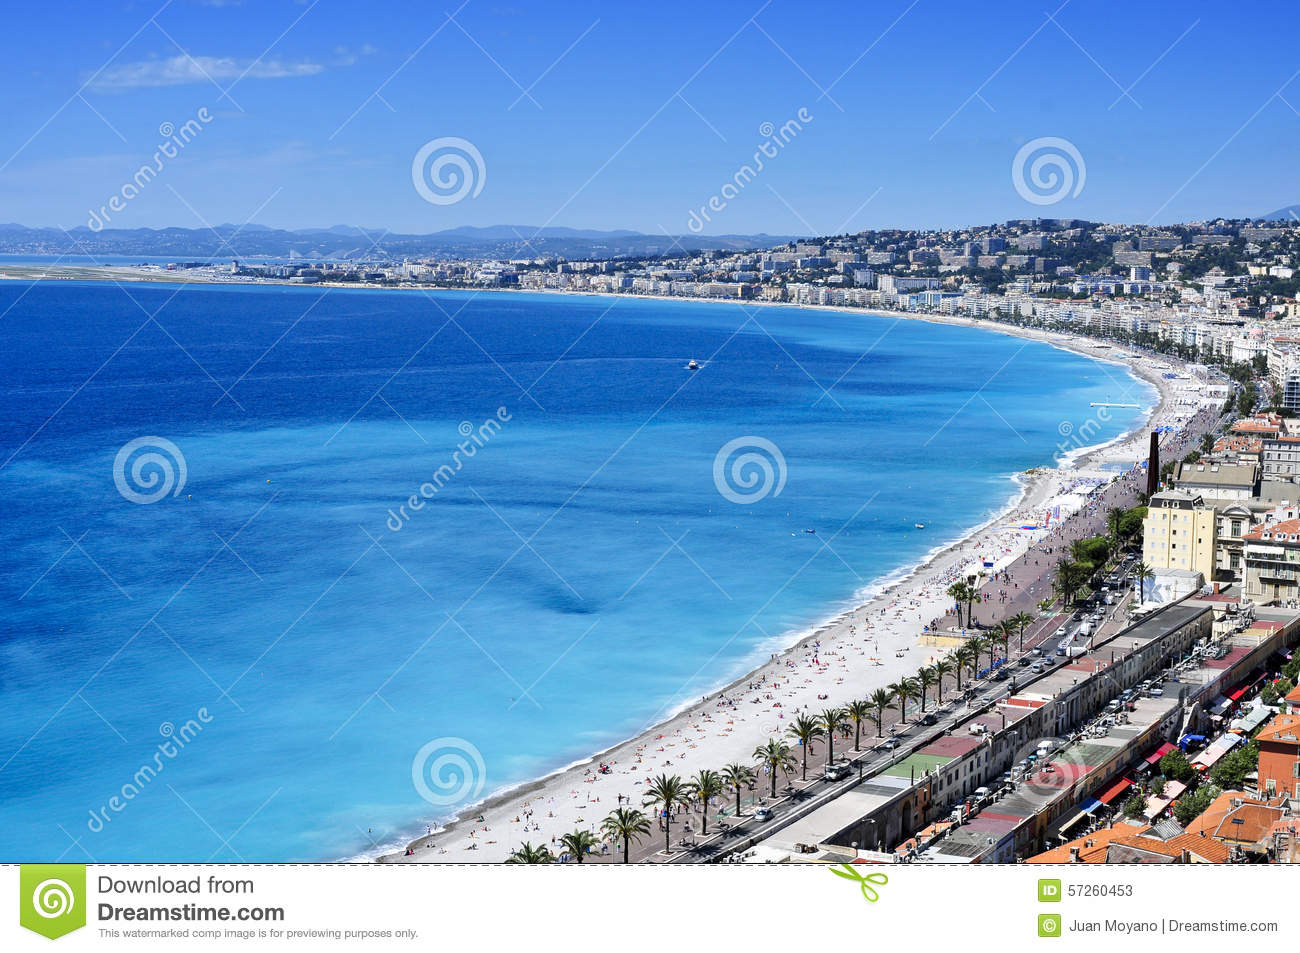 Aerial View Of Nice, France And The Mediterranean Sea